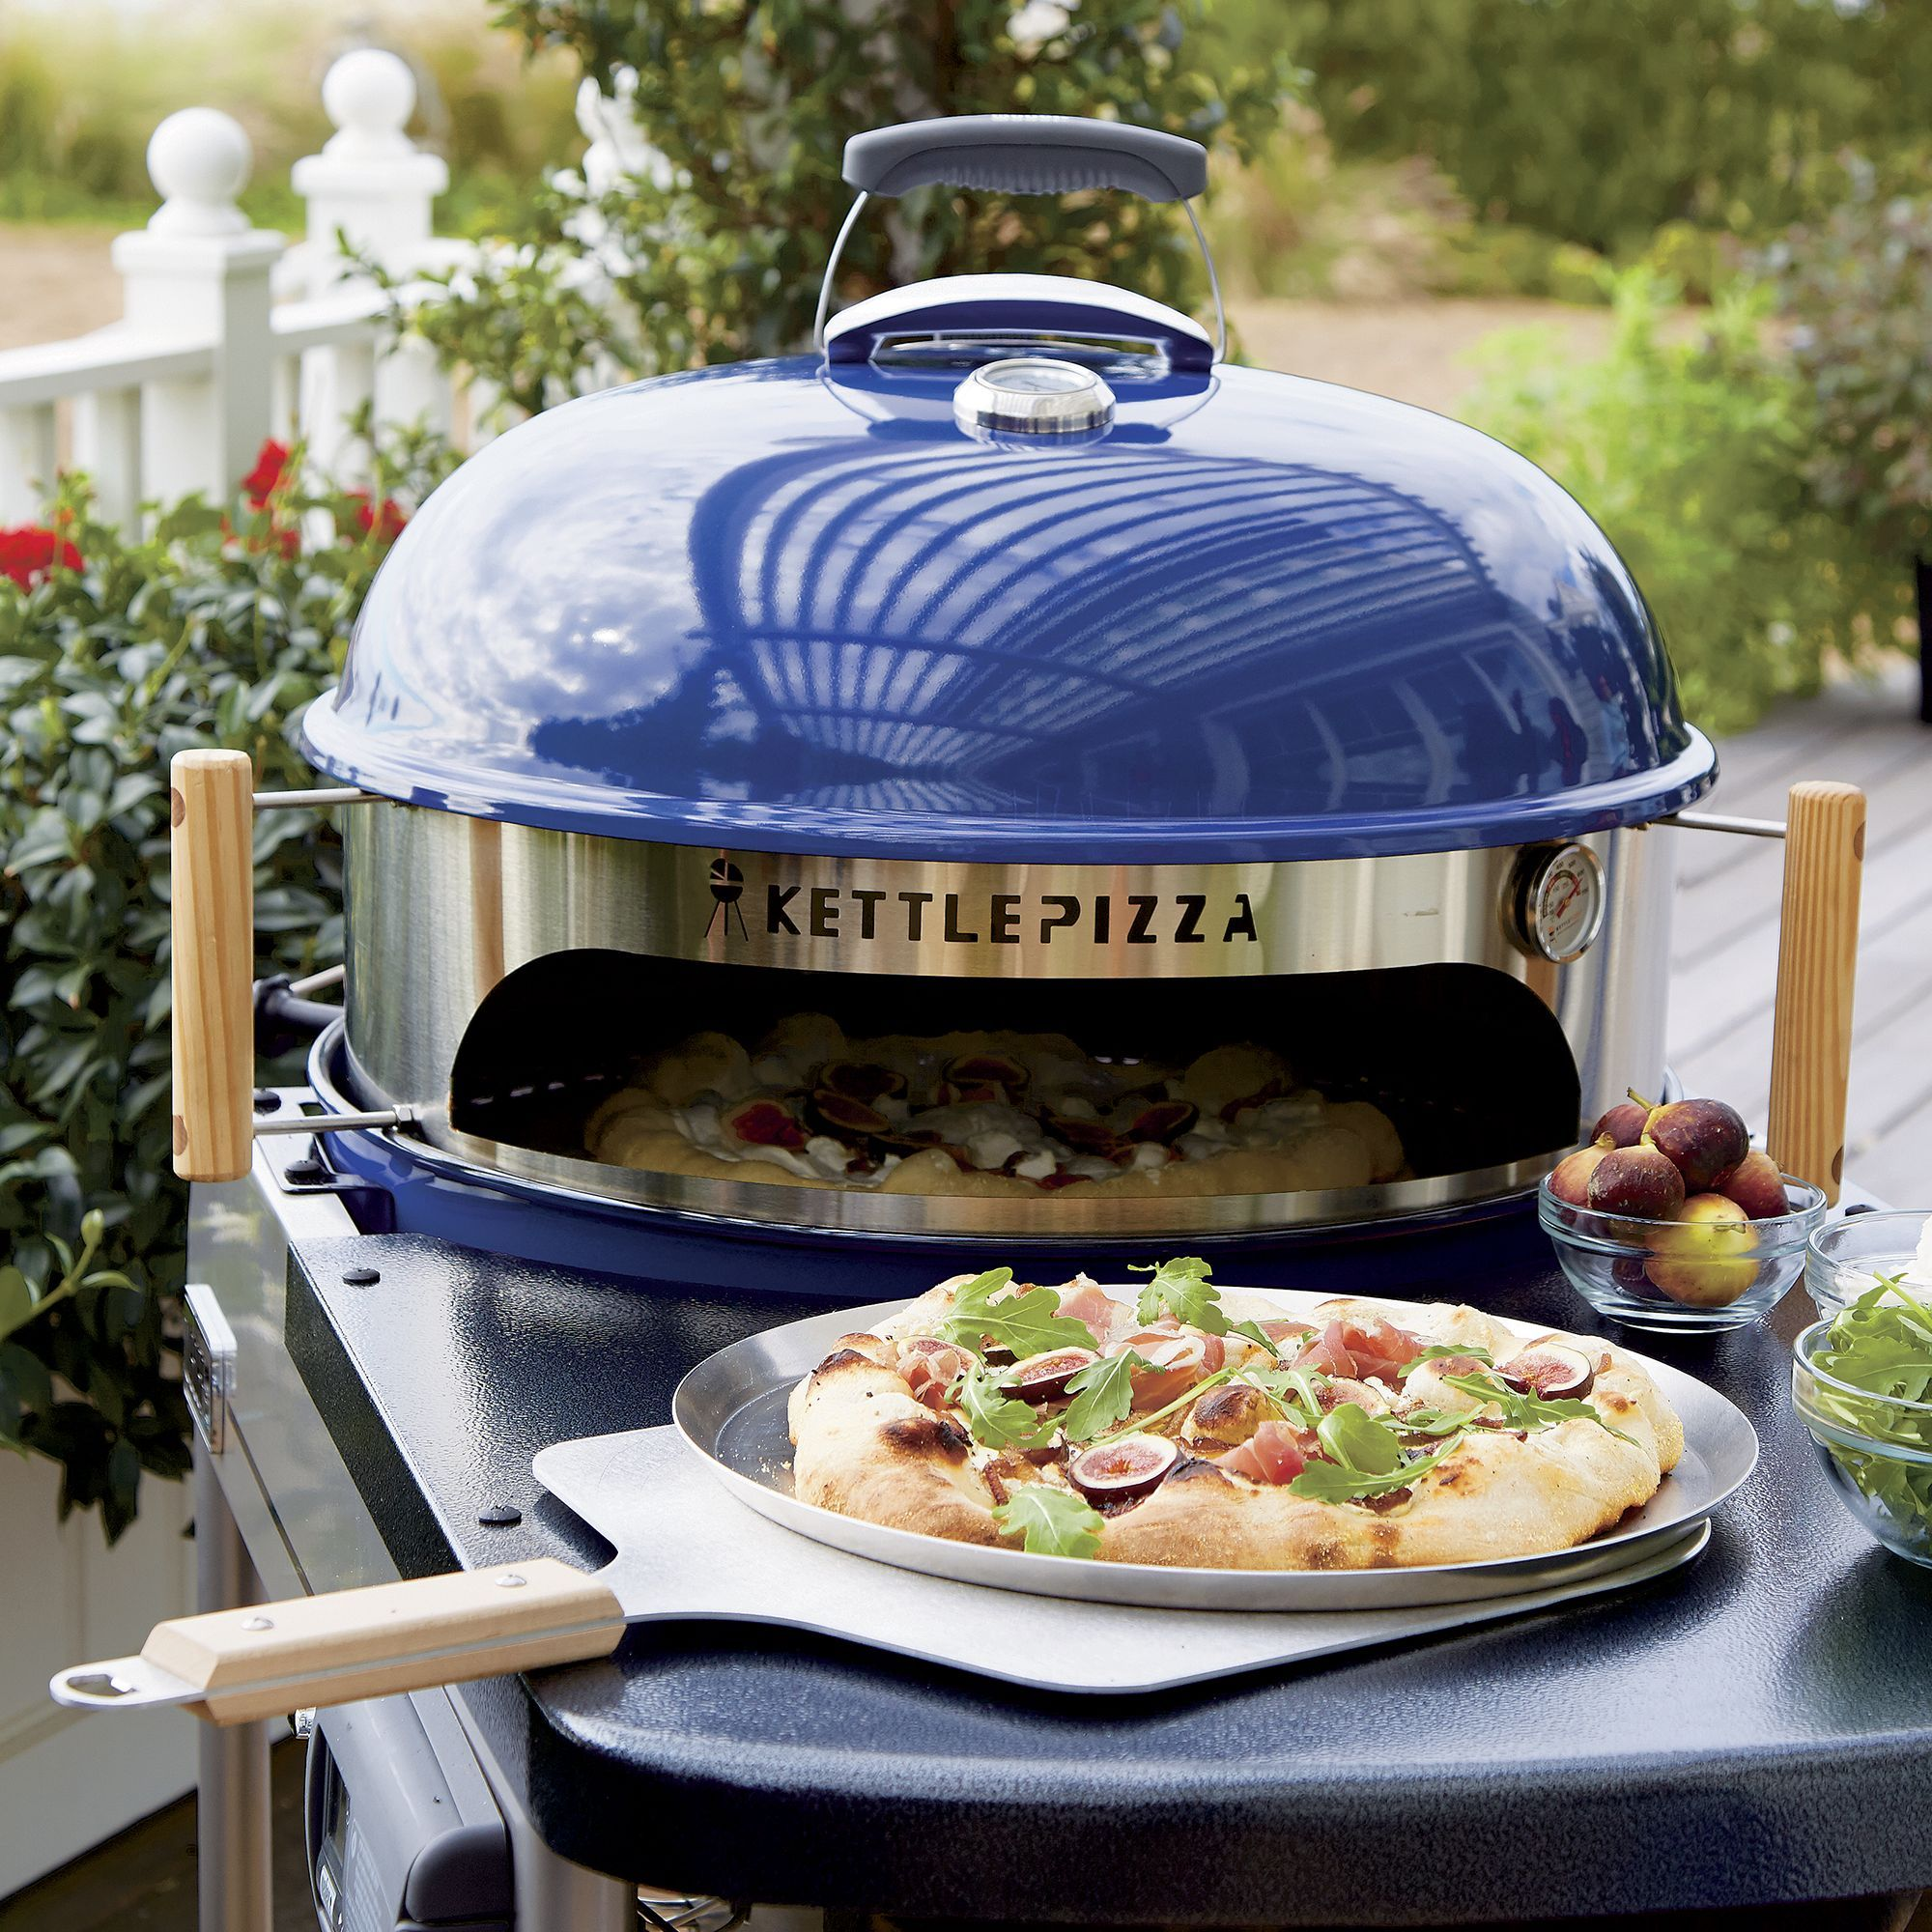 kettlepizza deluxe usa outdoor pizza oven kit cuisine pinterest four a pizza four a. Black Bedroom Furniture Sets. Home Design Ideas